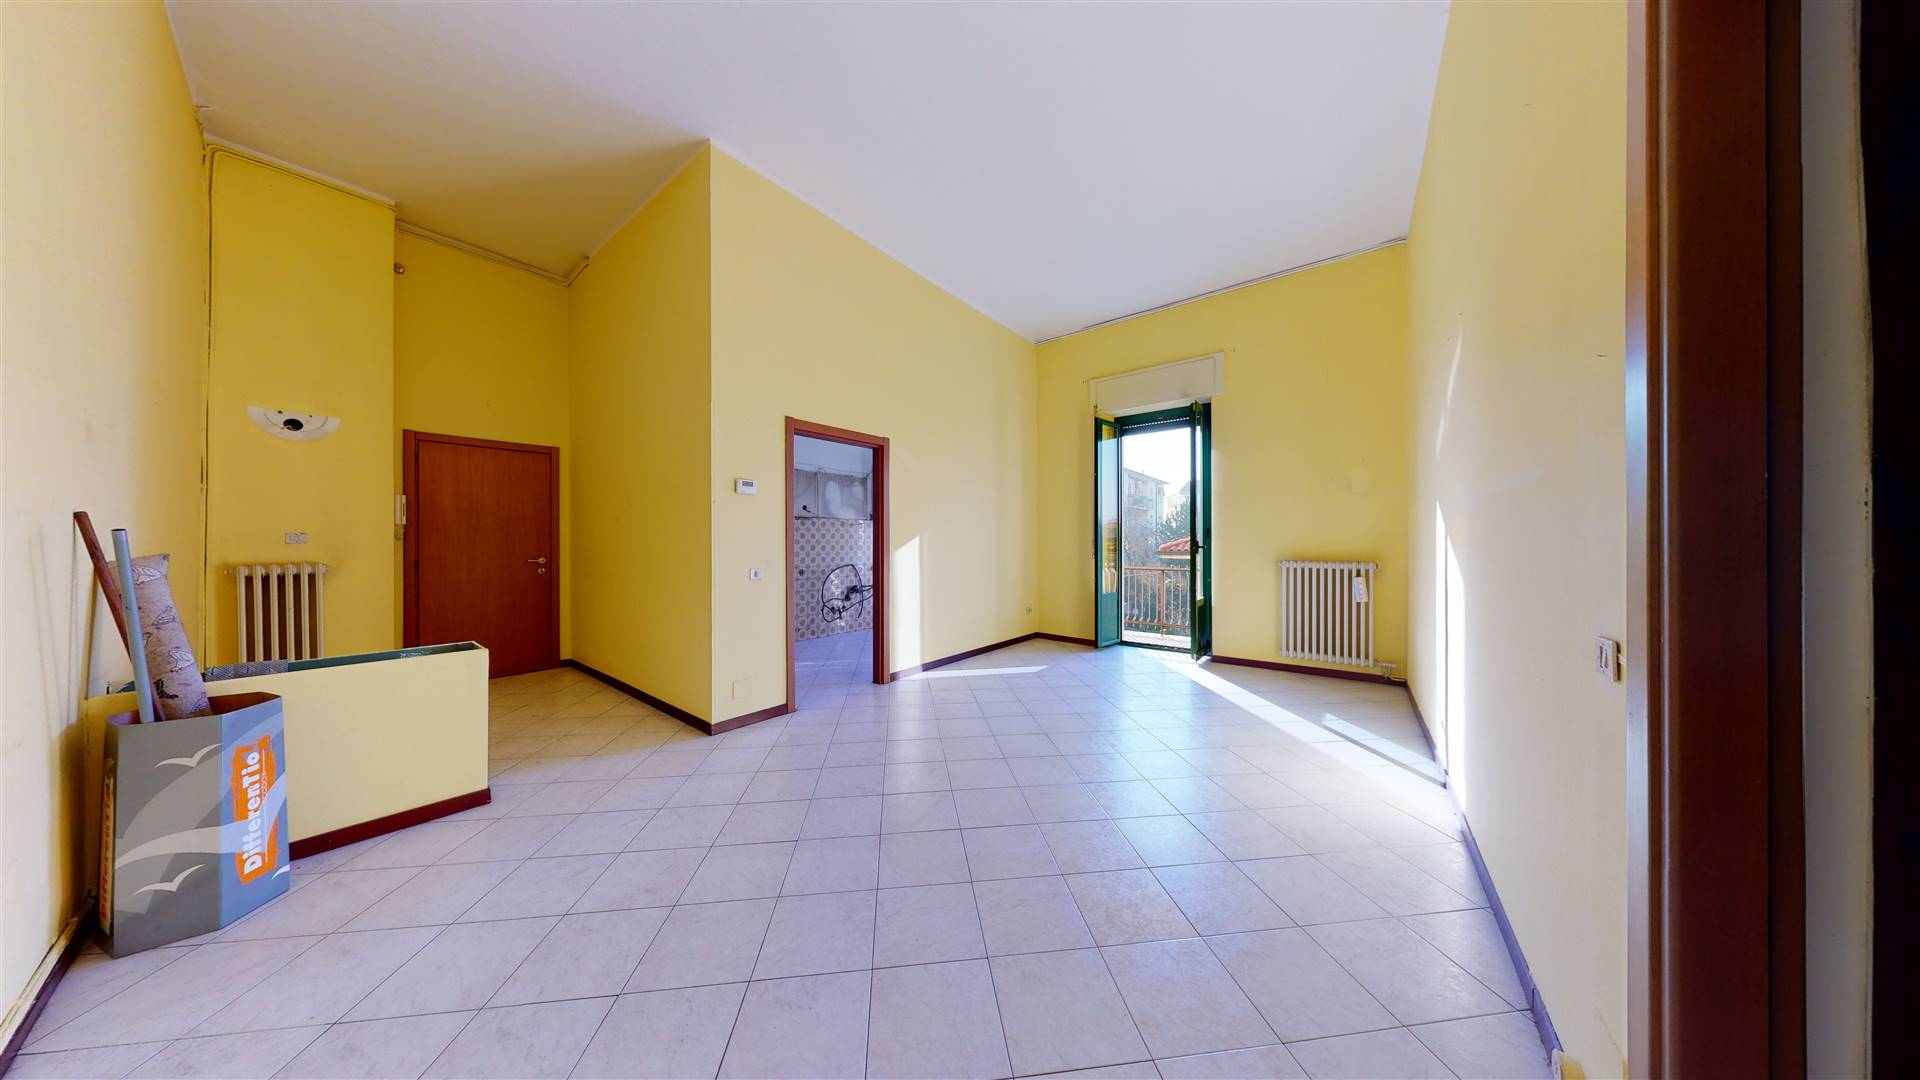 GROPPELLO D'ADDA, CASSANO D'ADDA, Apartment for sale of 65 Sq. mt., Good condition, Heating Individual heating system, Energetic class: G, Epi: 168,3